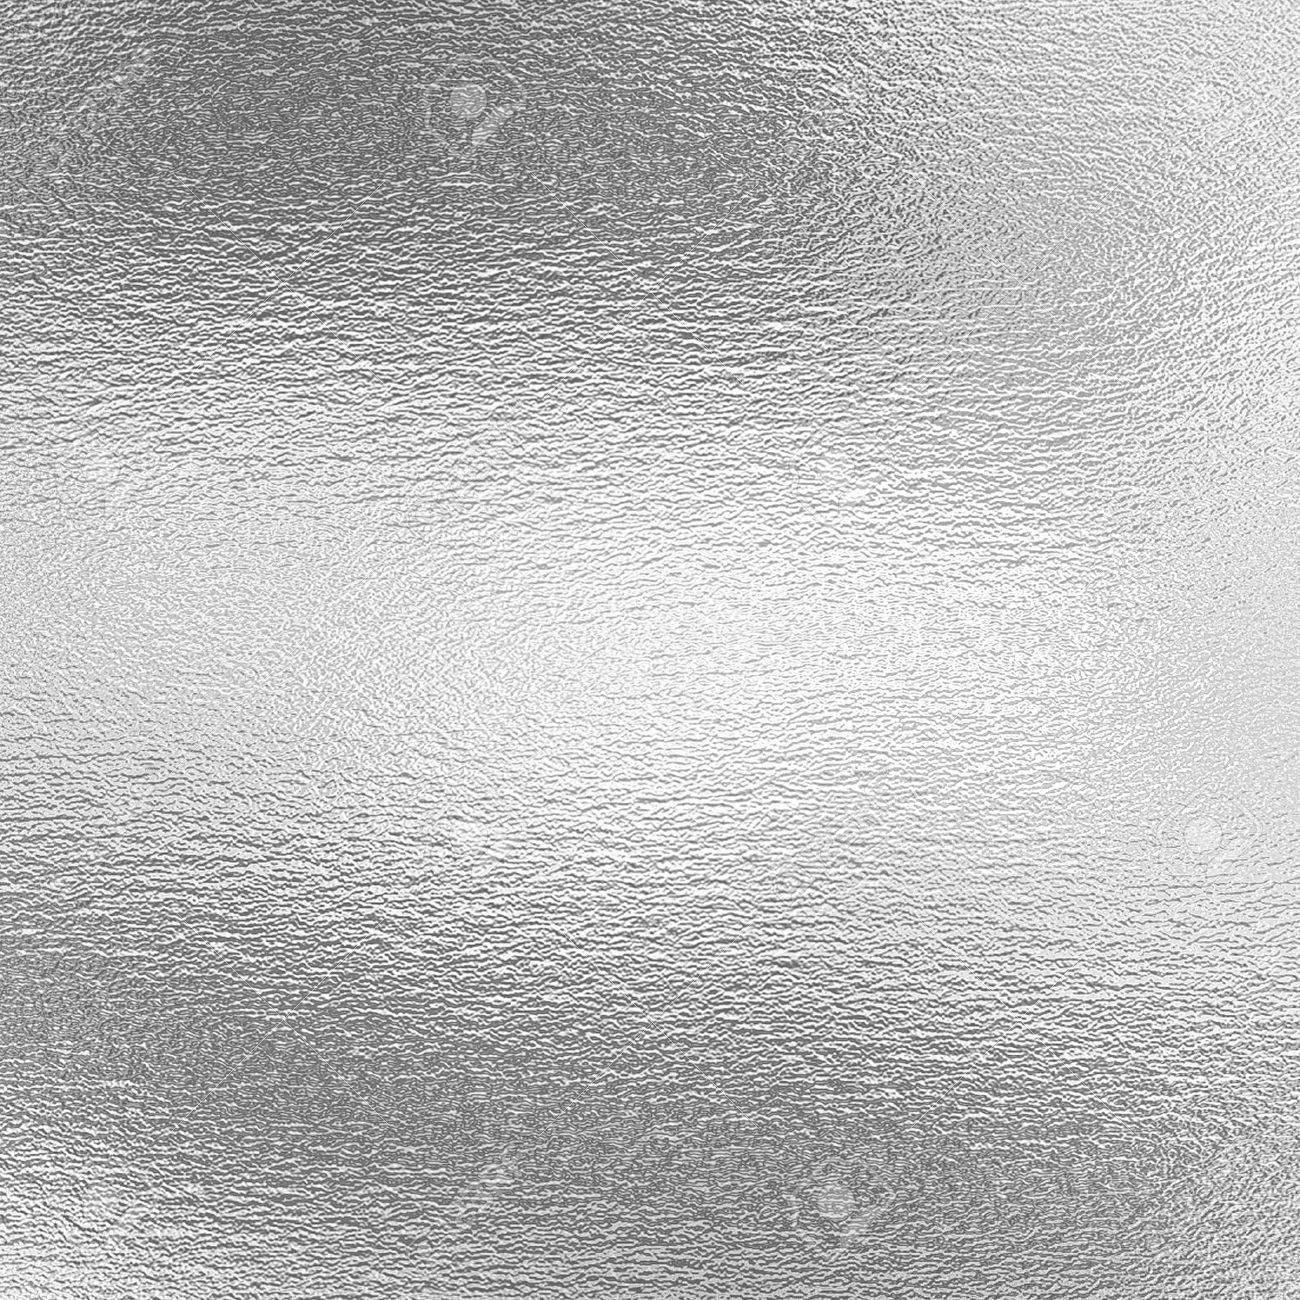 Silver foil texture, gray metallic background for artwork - 68880331